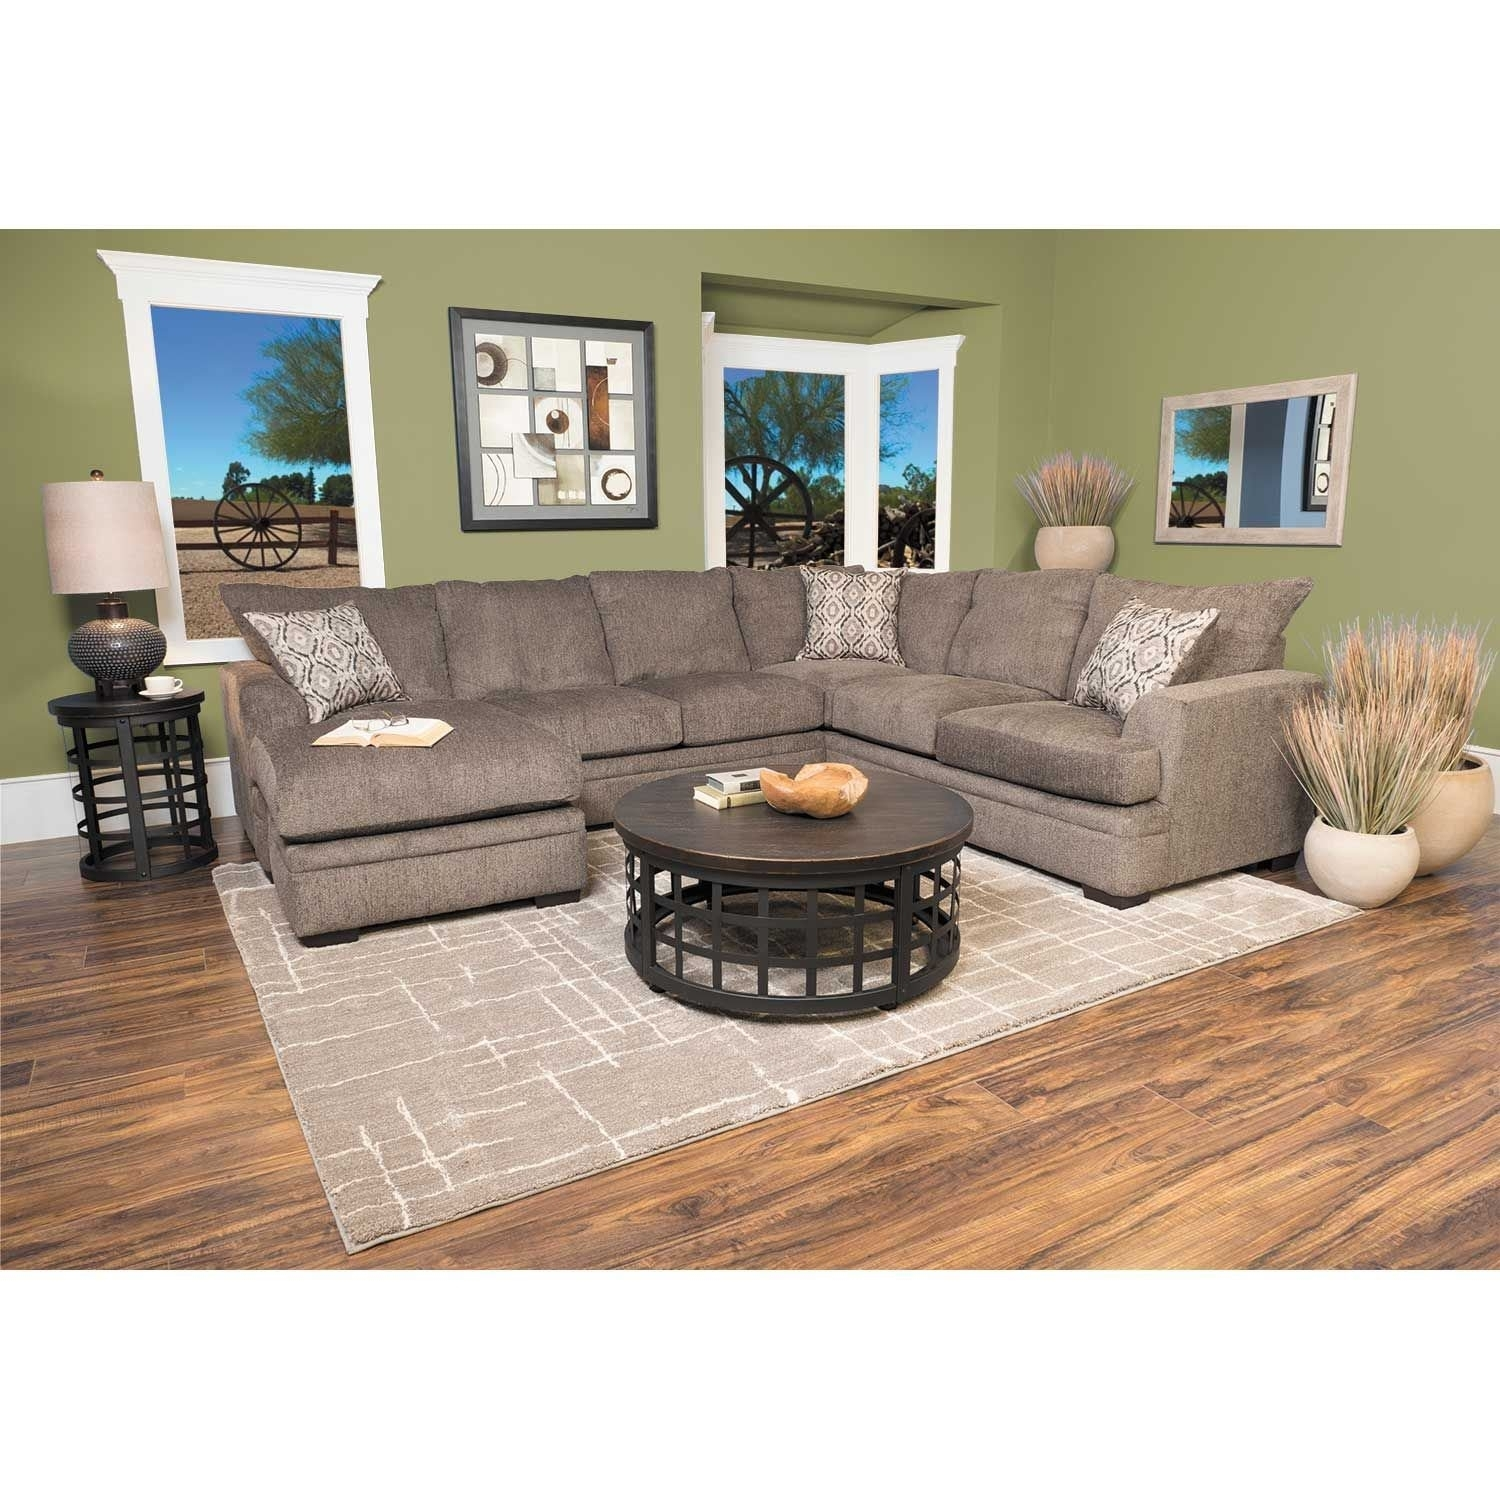 2Pc Pewter Raf Sectional W/chaise C2 68Rc 2Pc | Afw | Afw Intended For Evan 2 Piece Sectionals With Raf Chaise (Image 3 of 25)